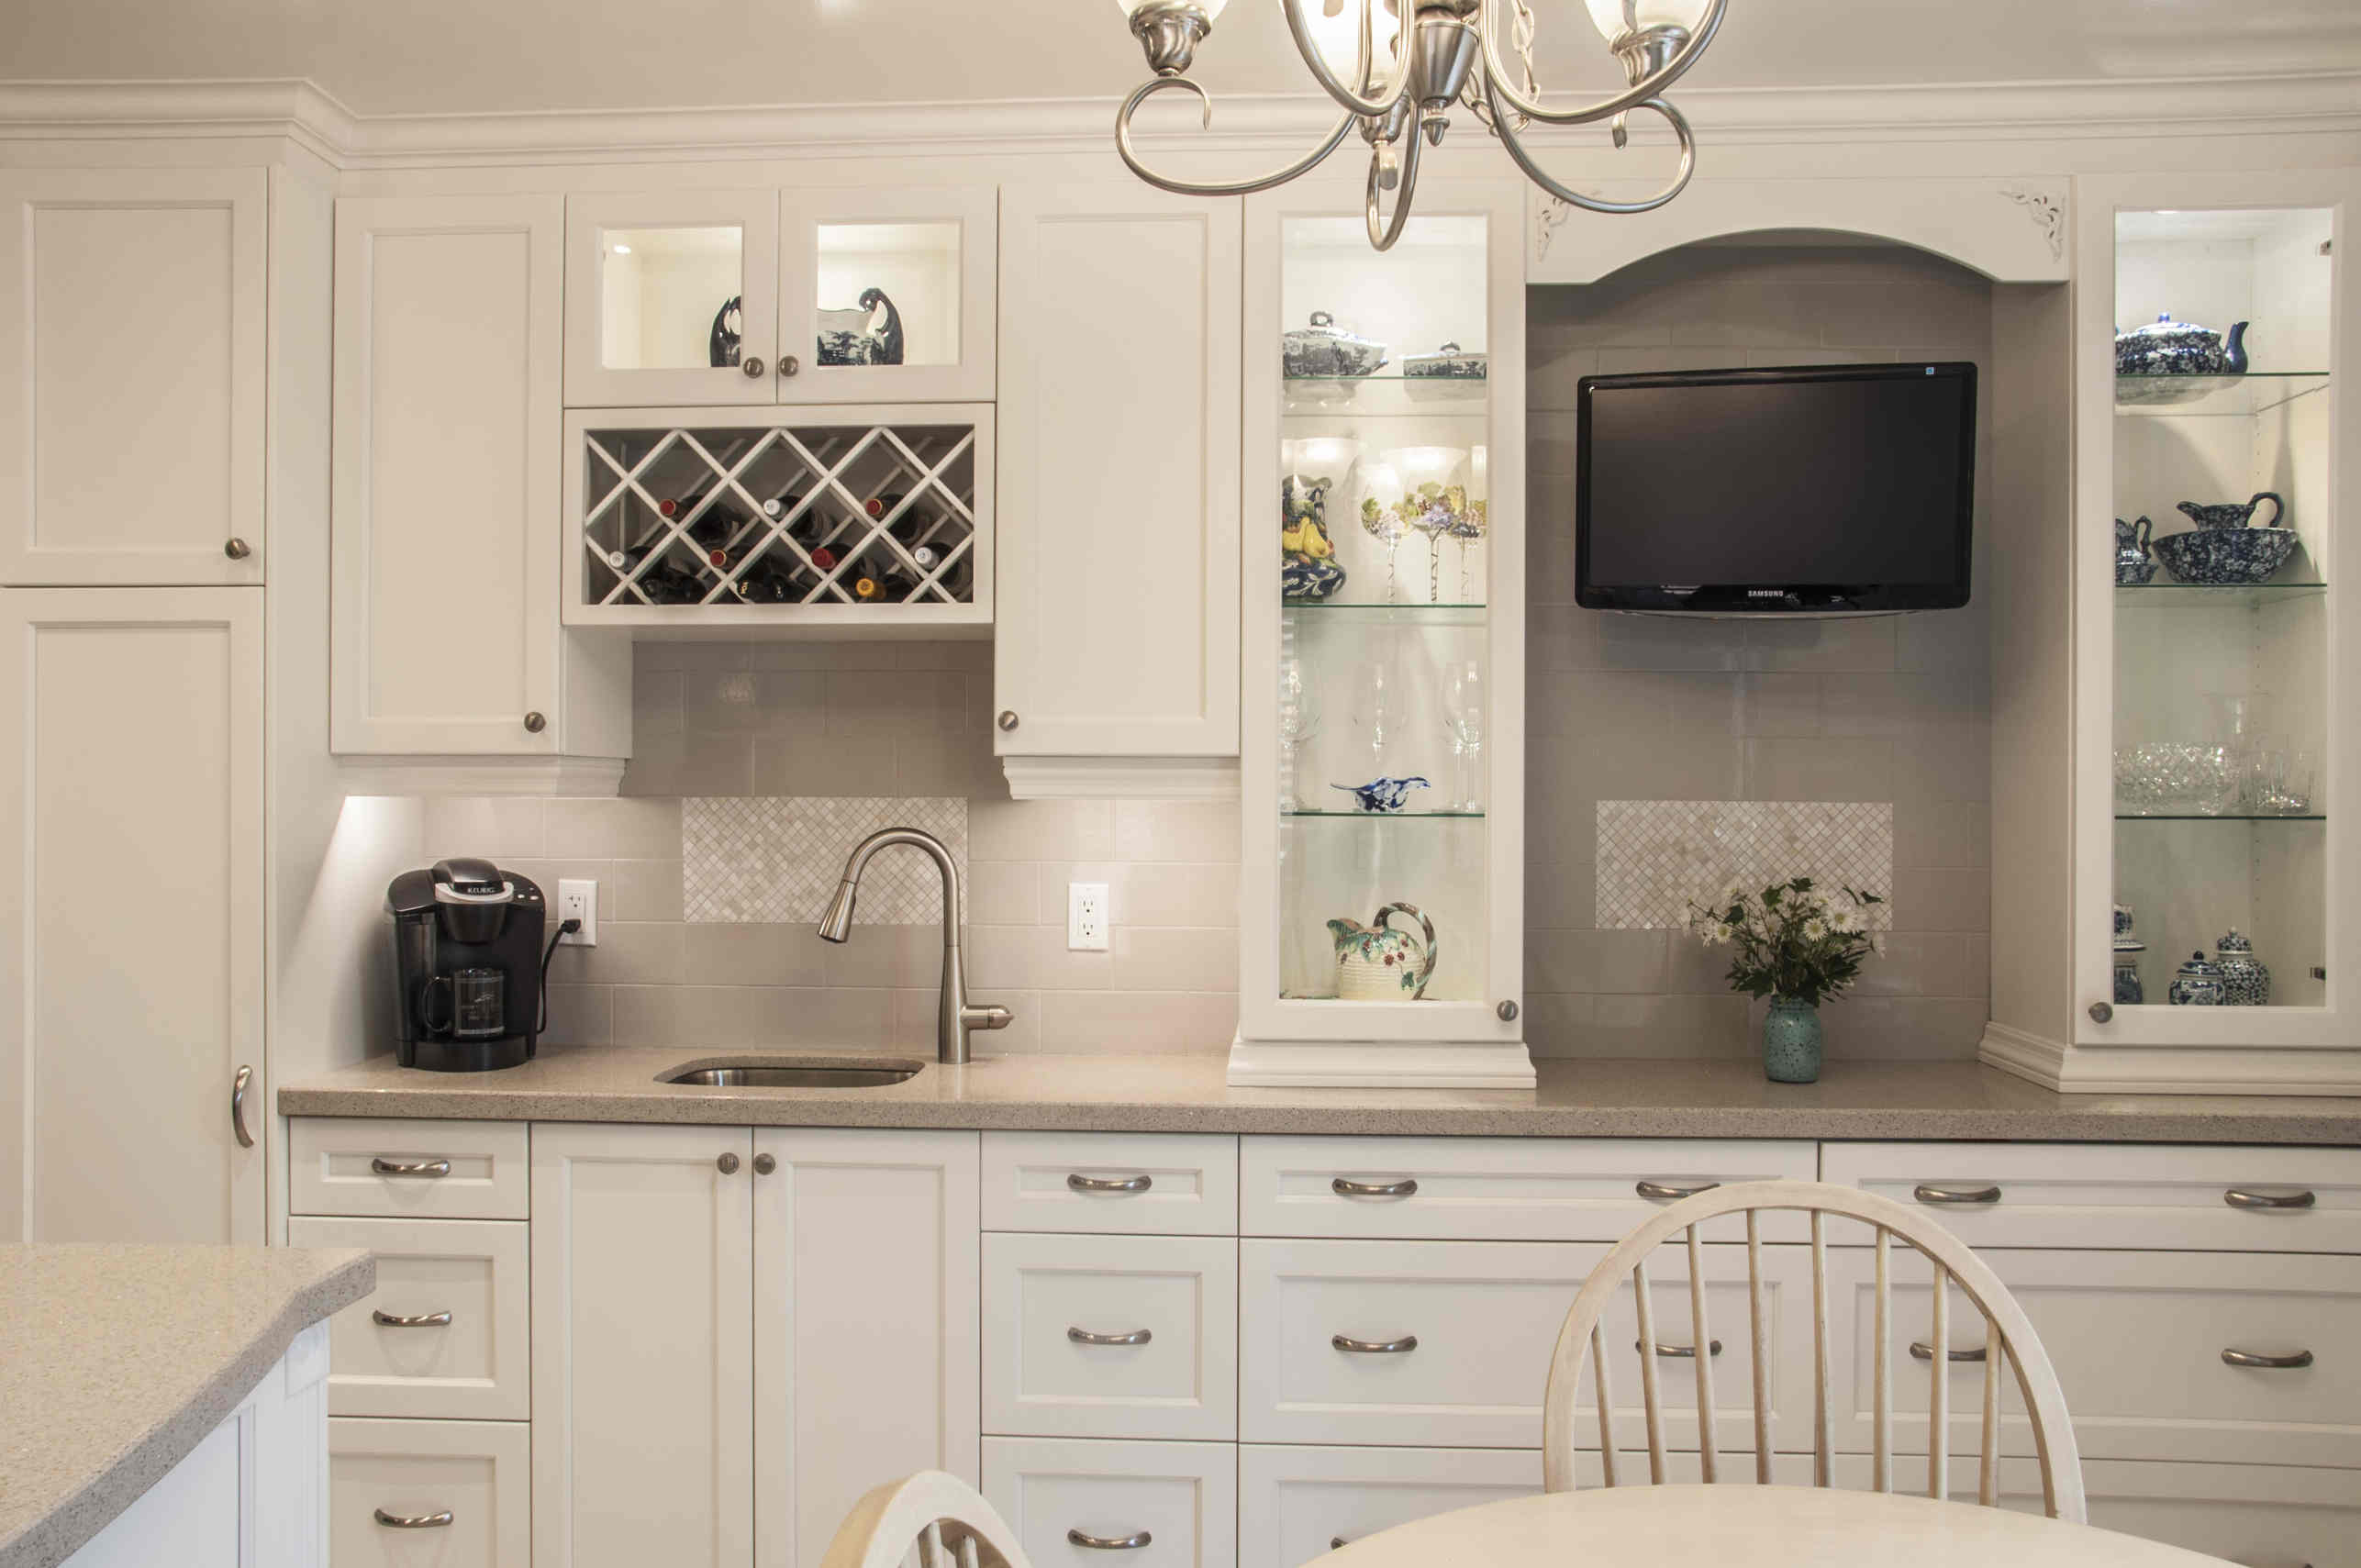 Kitchen Cabinets Flooring And Paint Easy Way To Revamp Kitchen